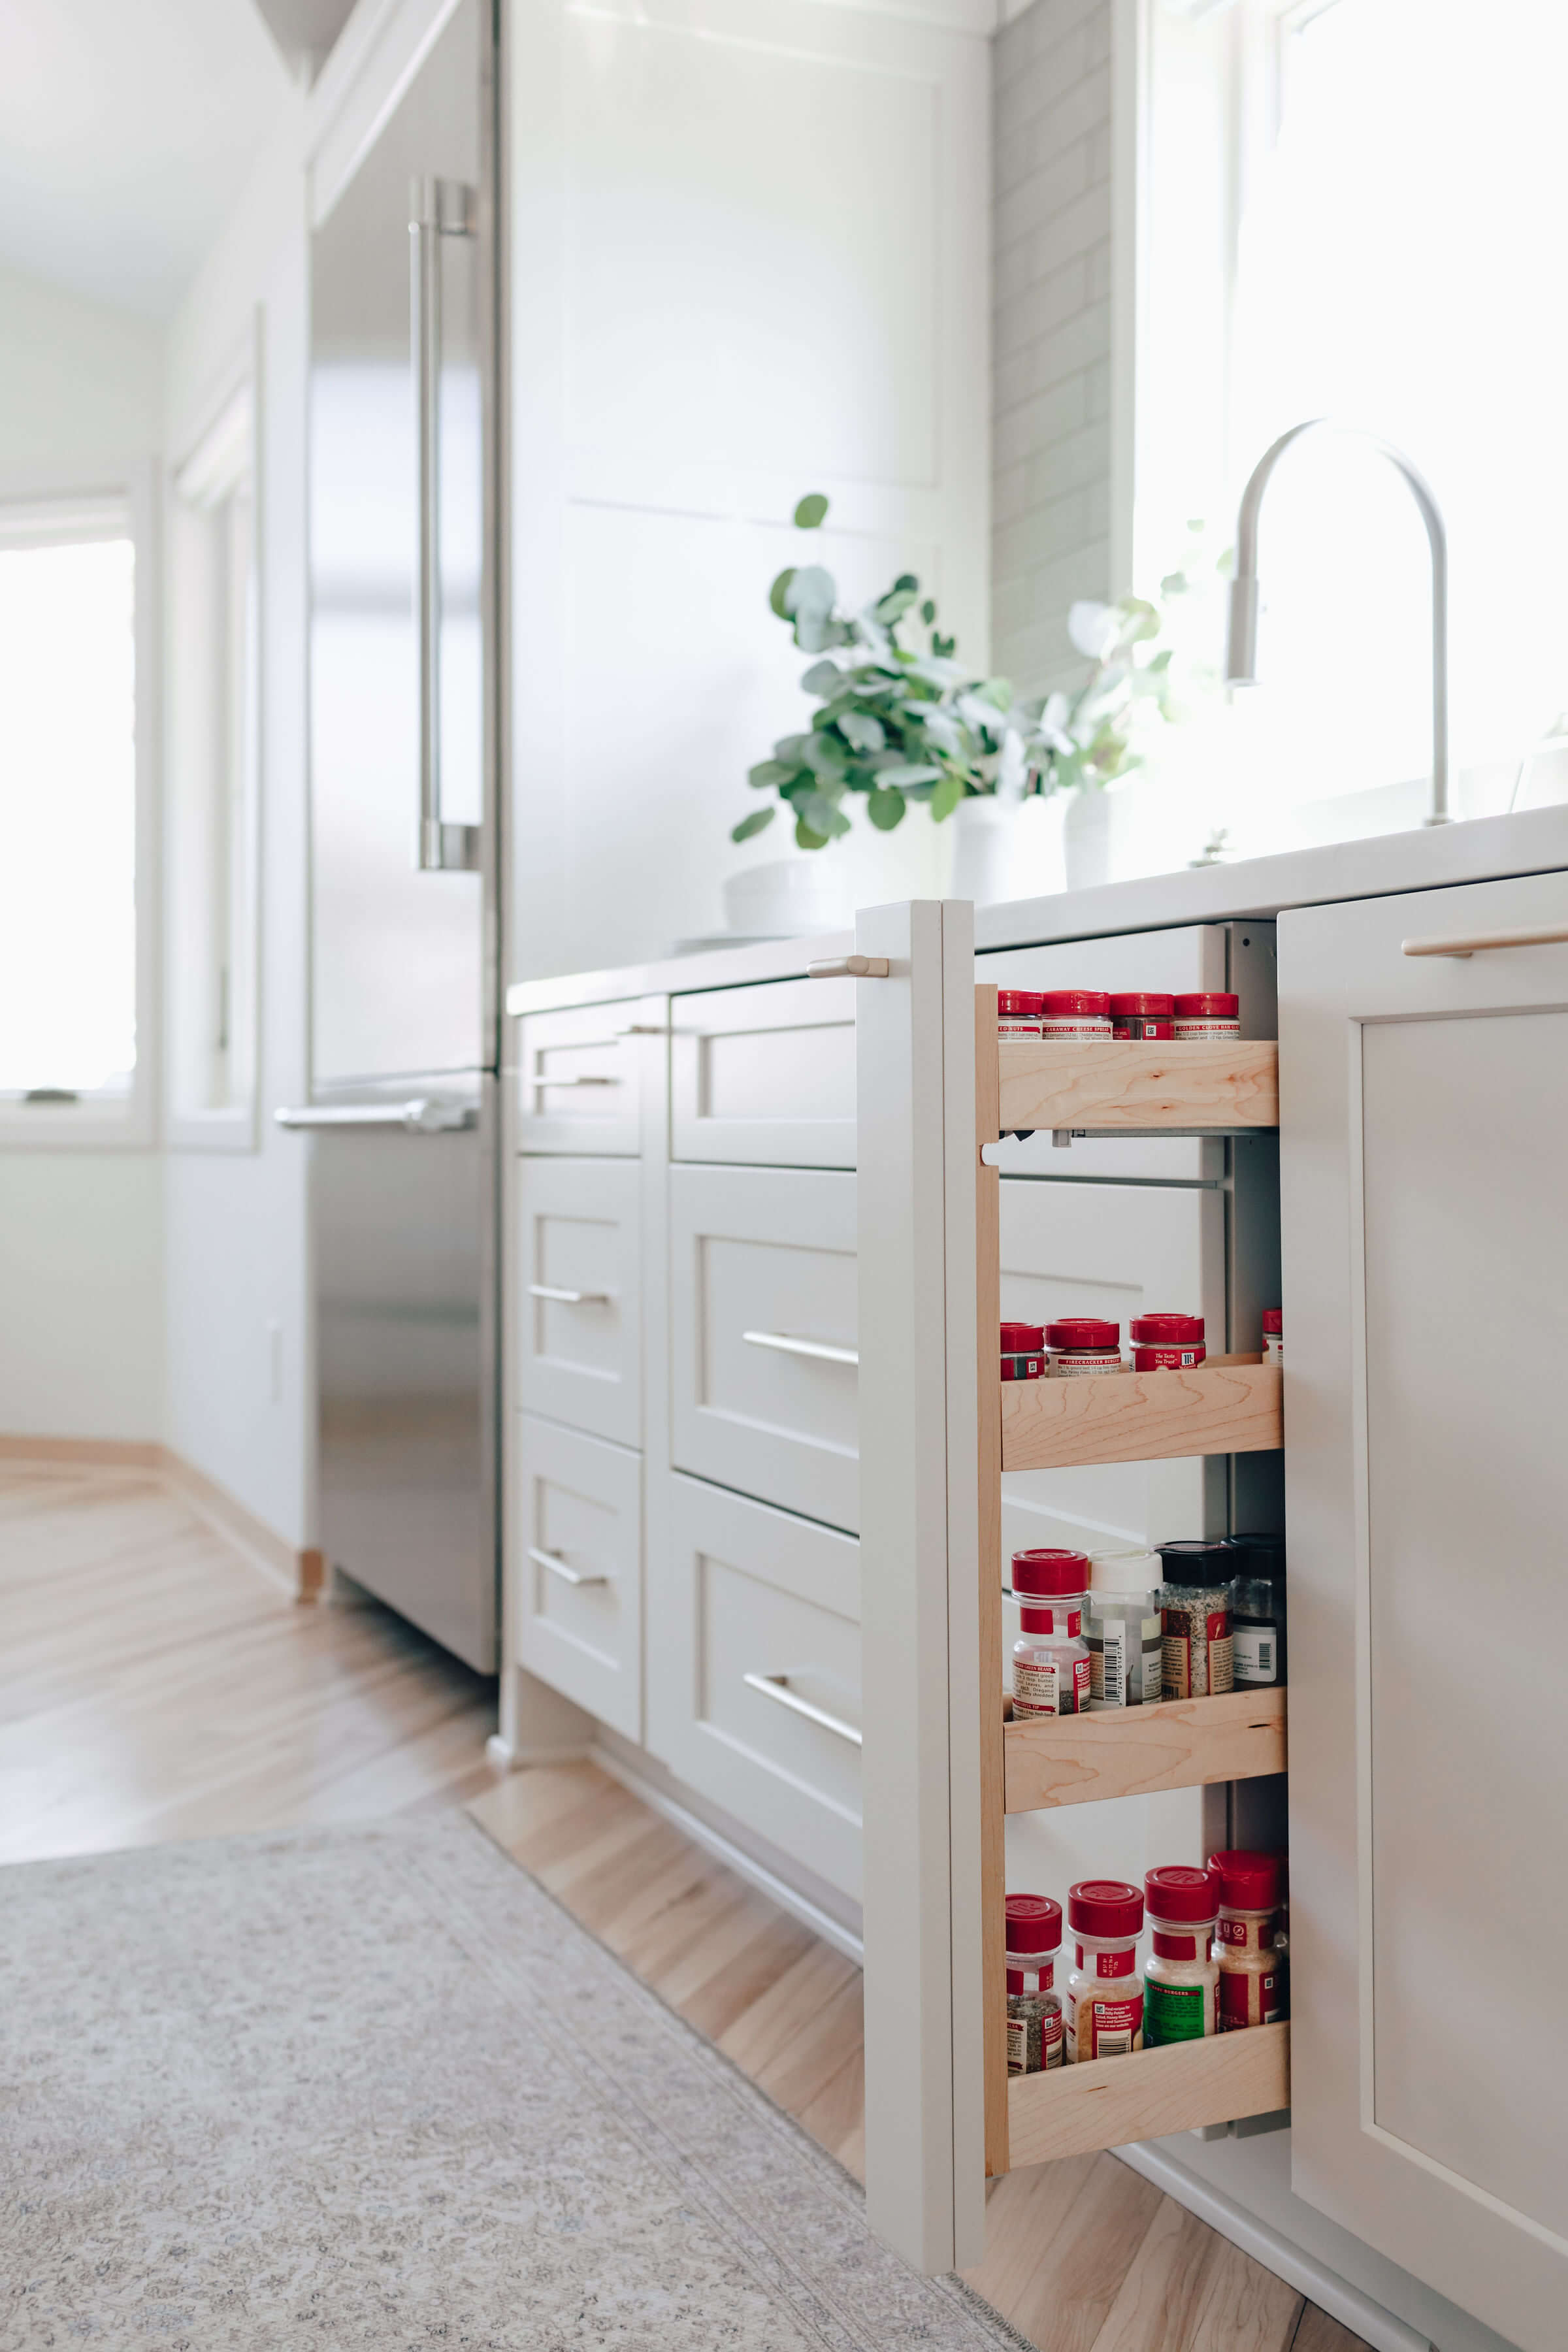 Dura Supreme's Pull-Out Spice Rack. Design by Danielle Lardani of Studio M Kitchen & Bath, Twin Cities, MN. Photo by Chelsie Lopez Production & Marketing.